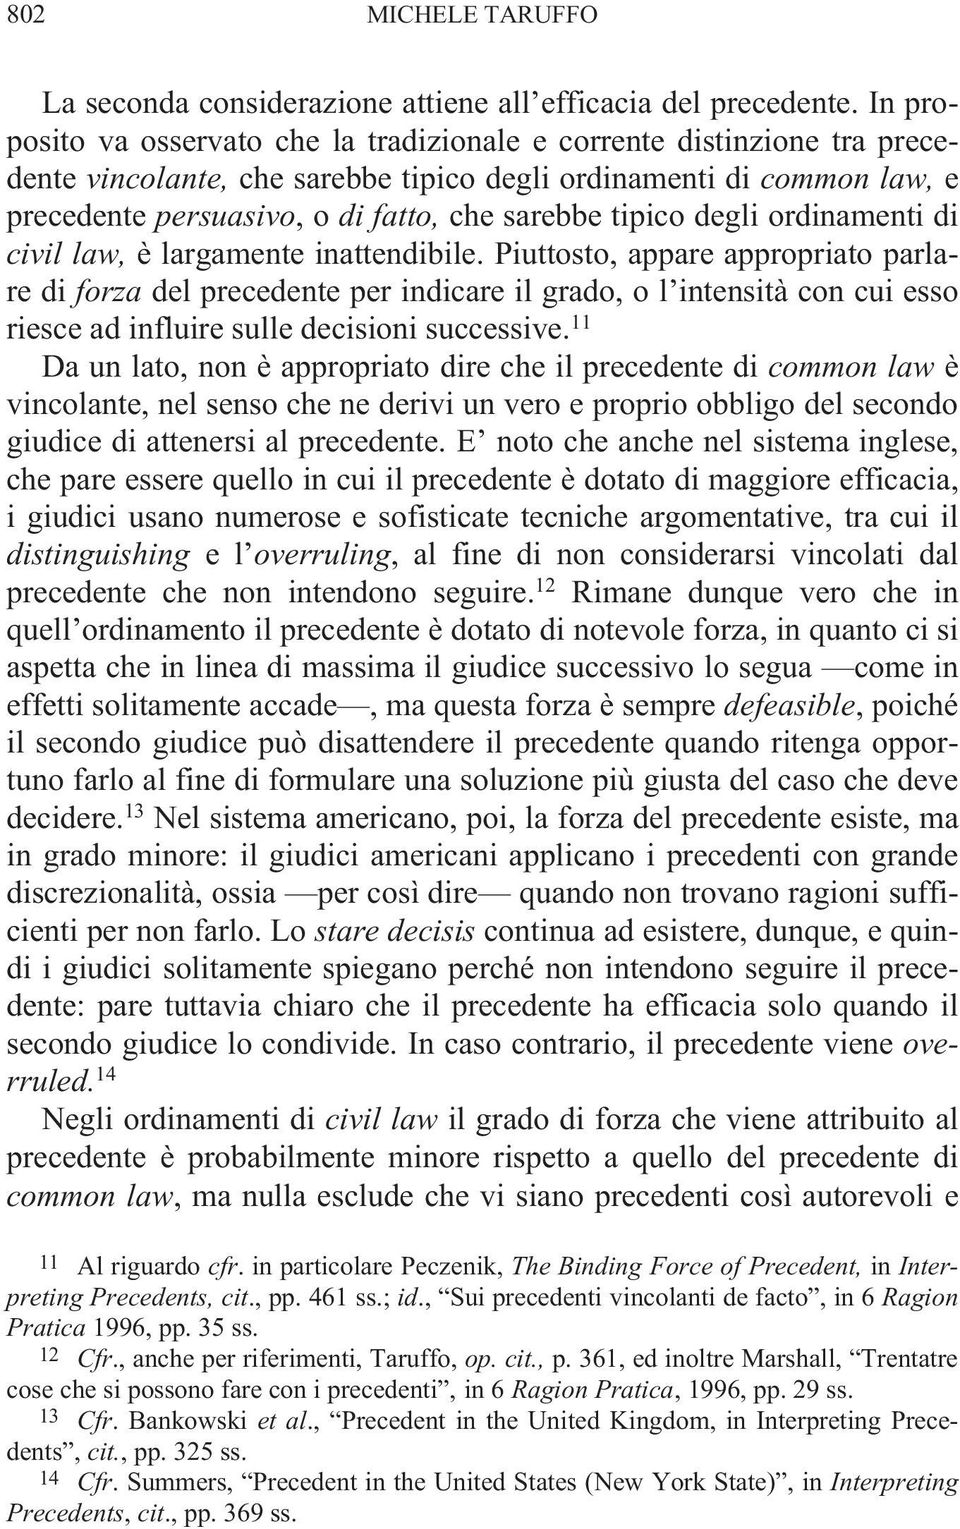 tipico degli ordinamenti di civil law, è largamente inattendibile.